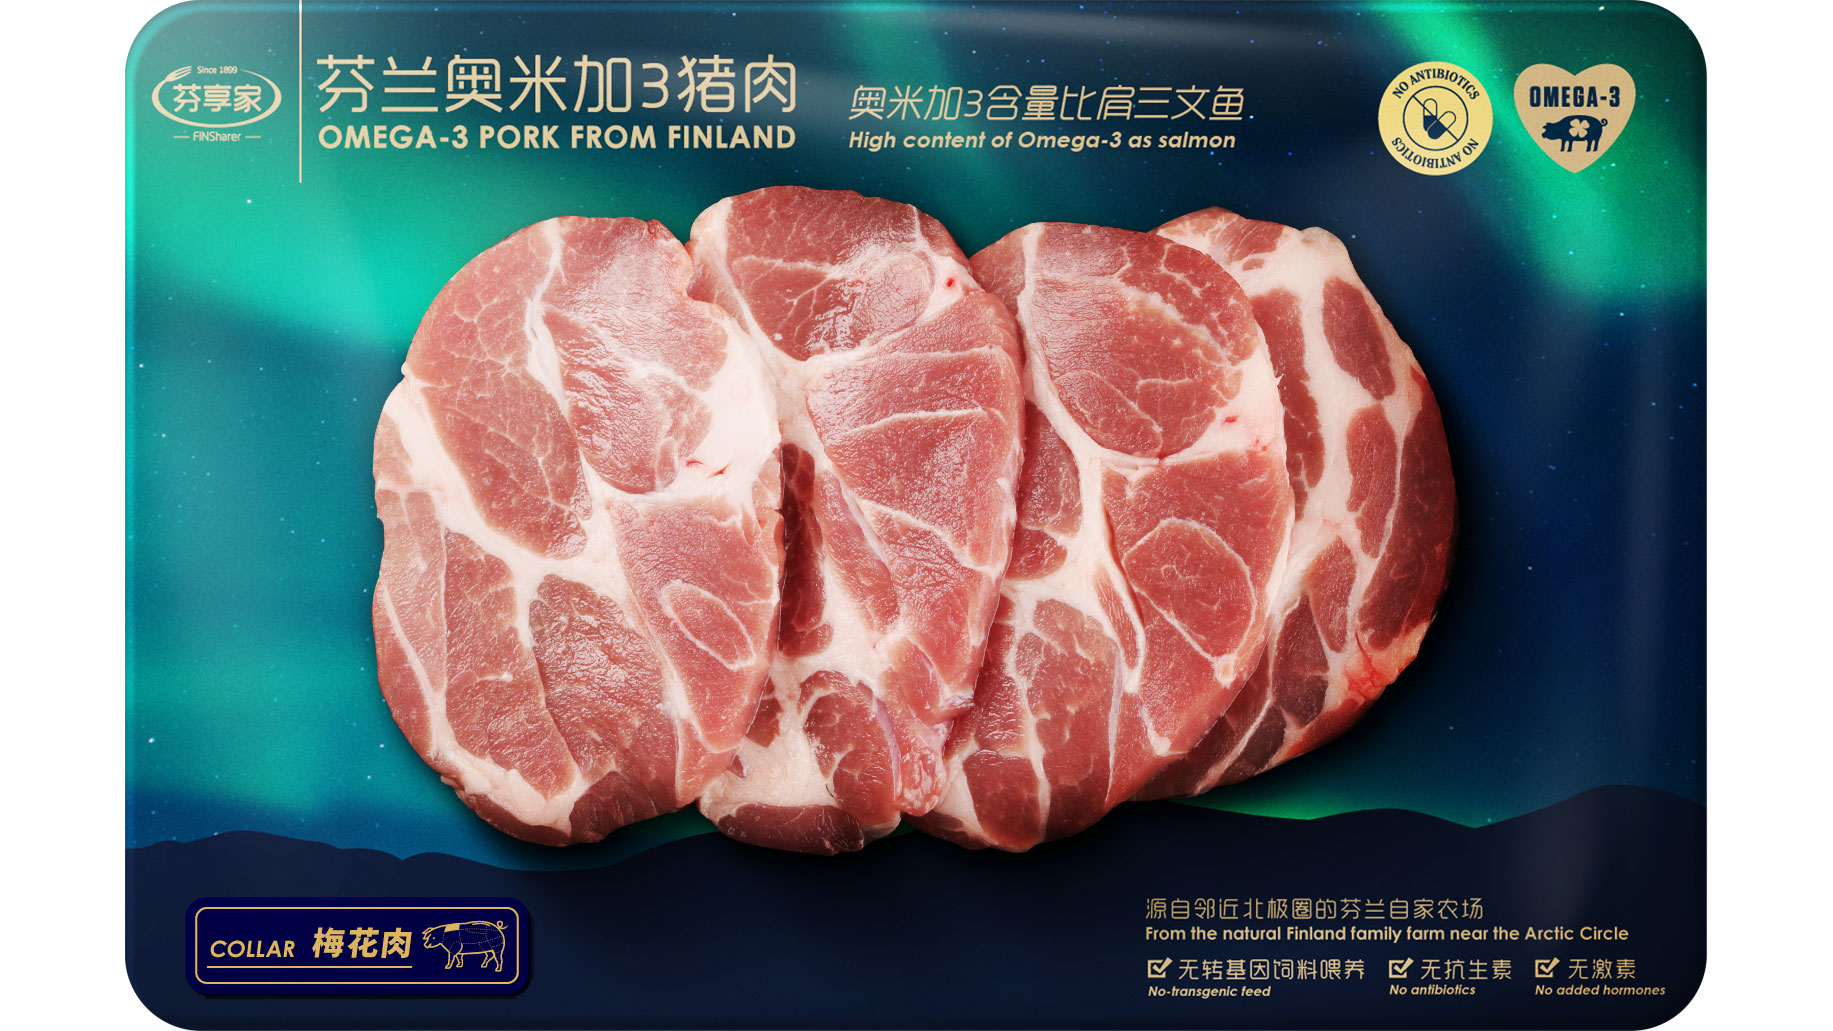 EU grants Finland EUR 3 million to promote export of meat to the Chinese market